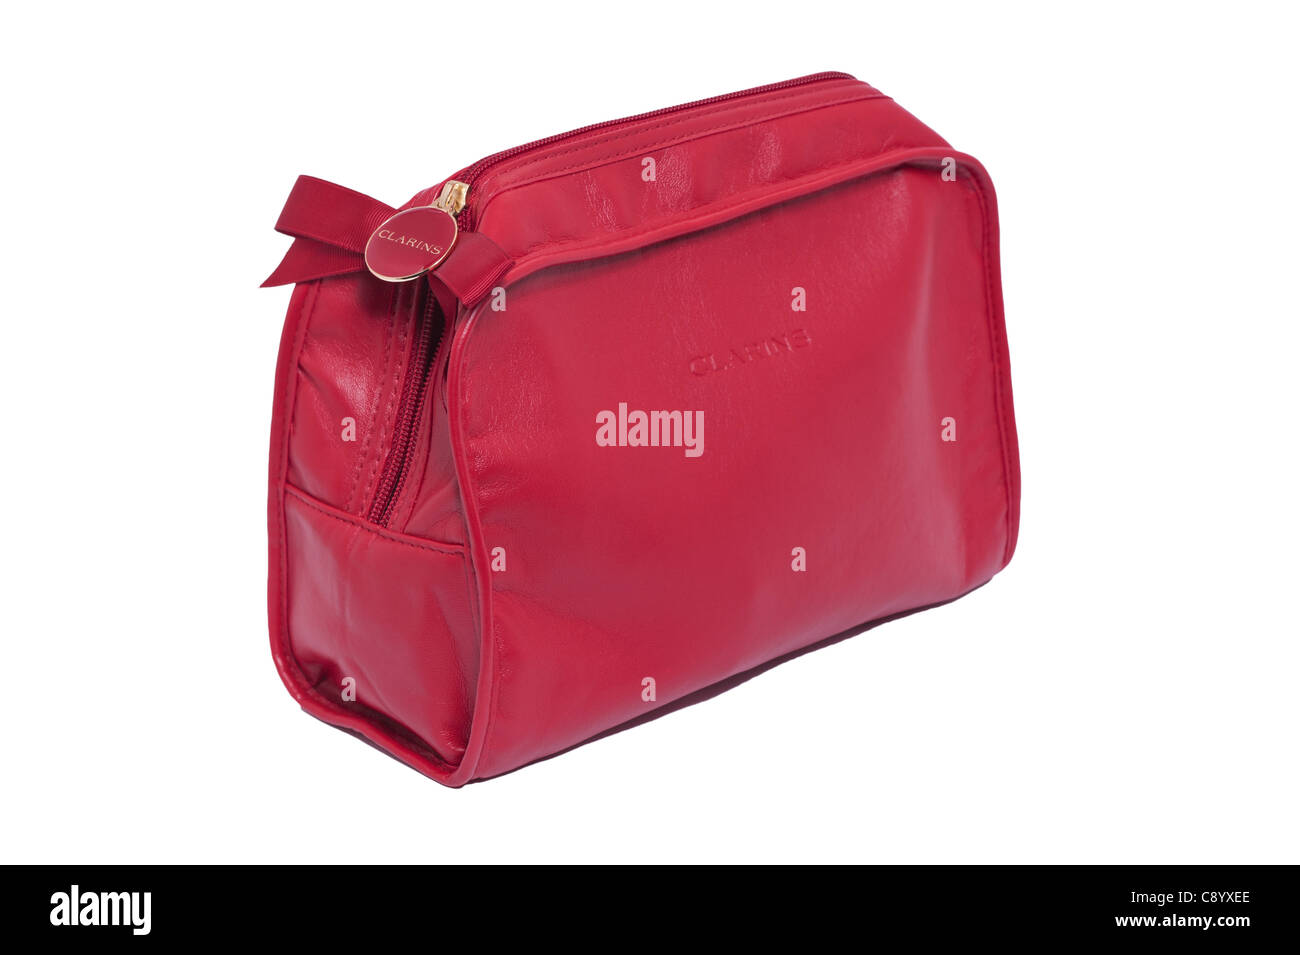 A Clarins makeup wash bag on a white background - Stock Image